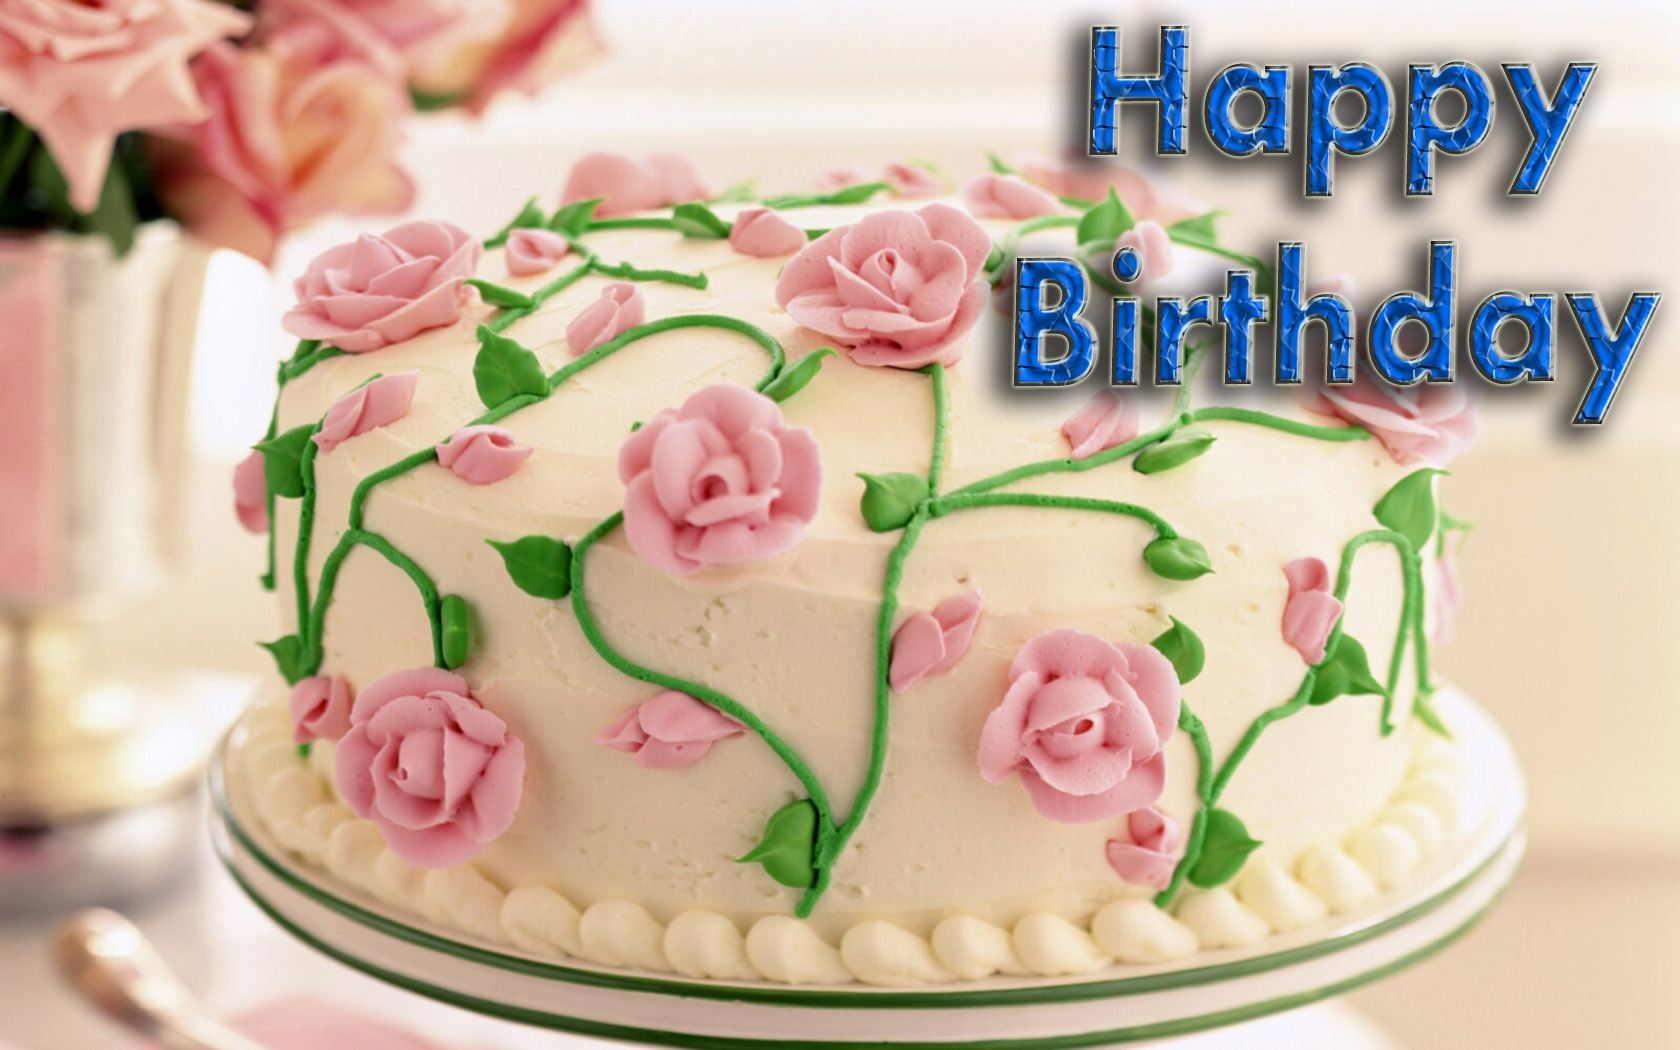 birth day hd images ; Birthday-Cake-High-Quality-HD-Wallpaper-and-Images